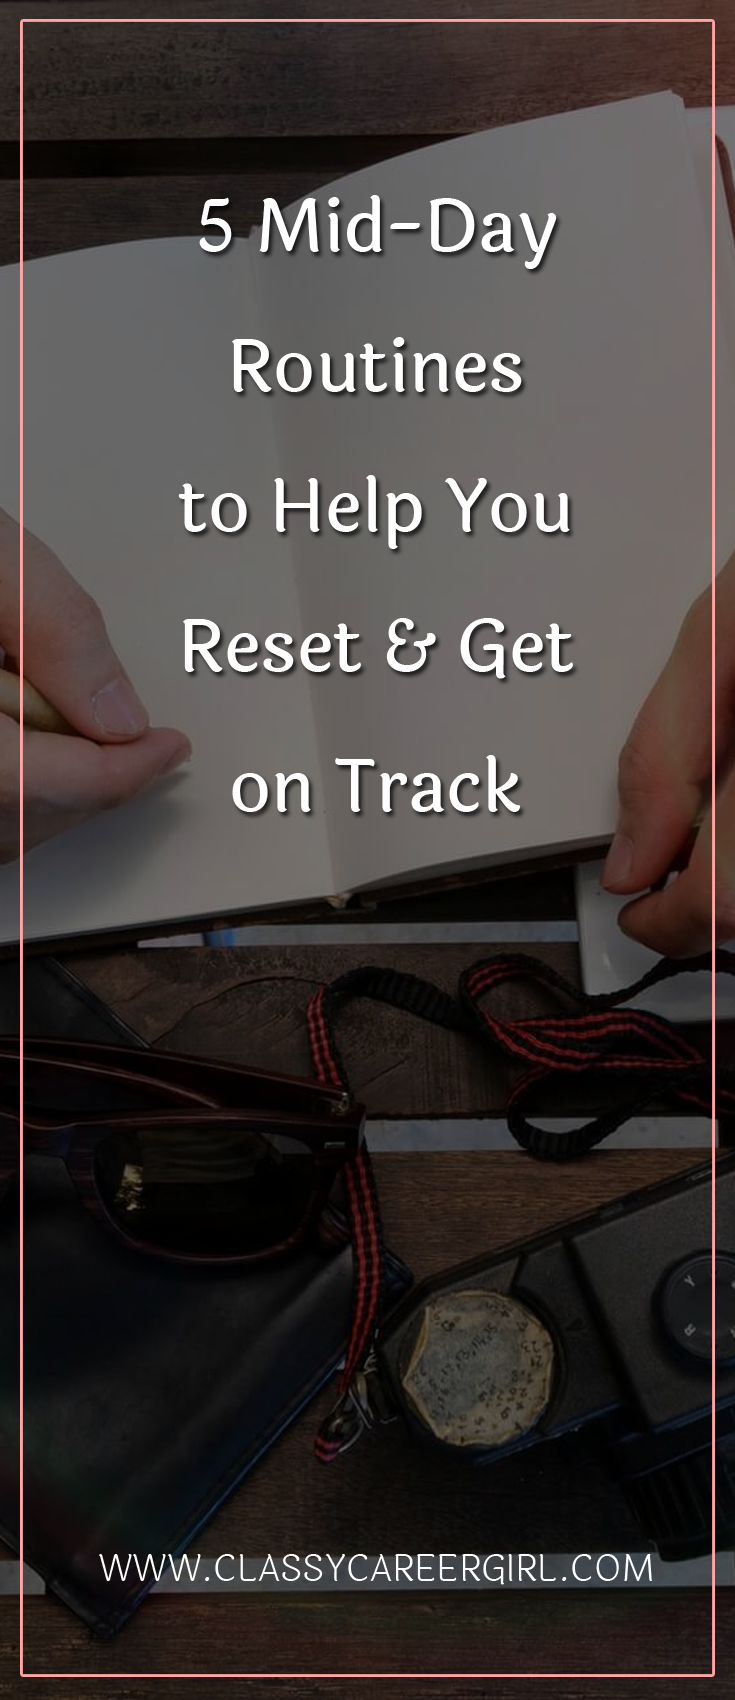 5 MidDay Routines to Help You Reset & Get on Track Time